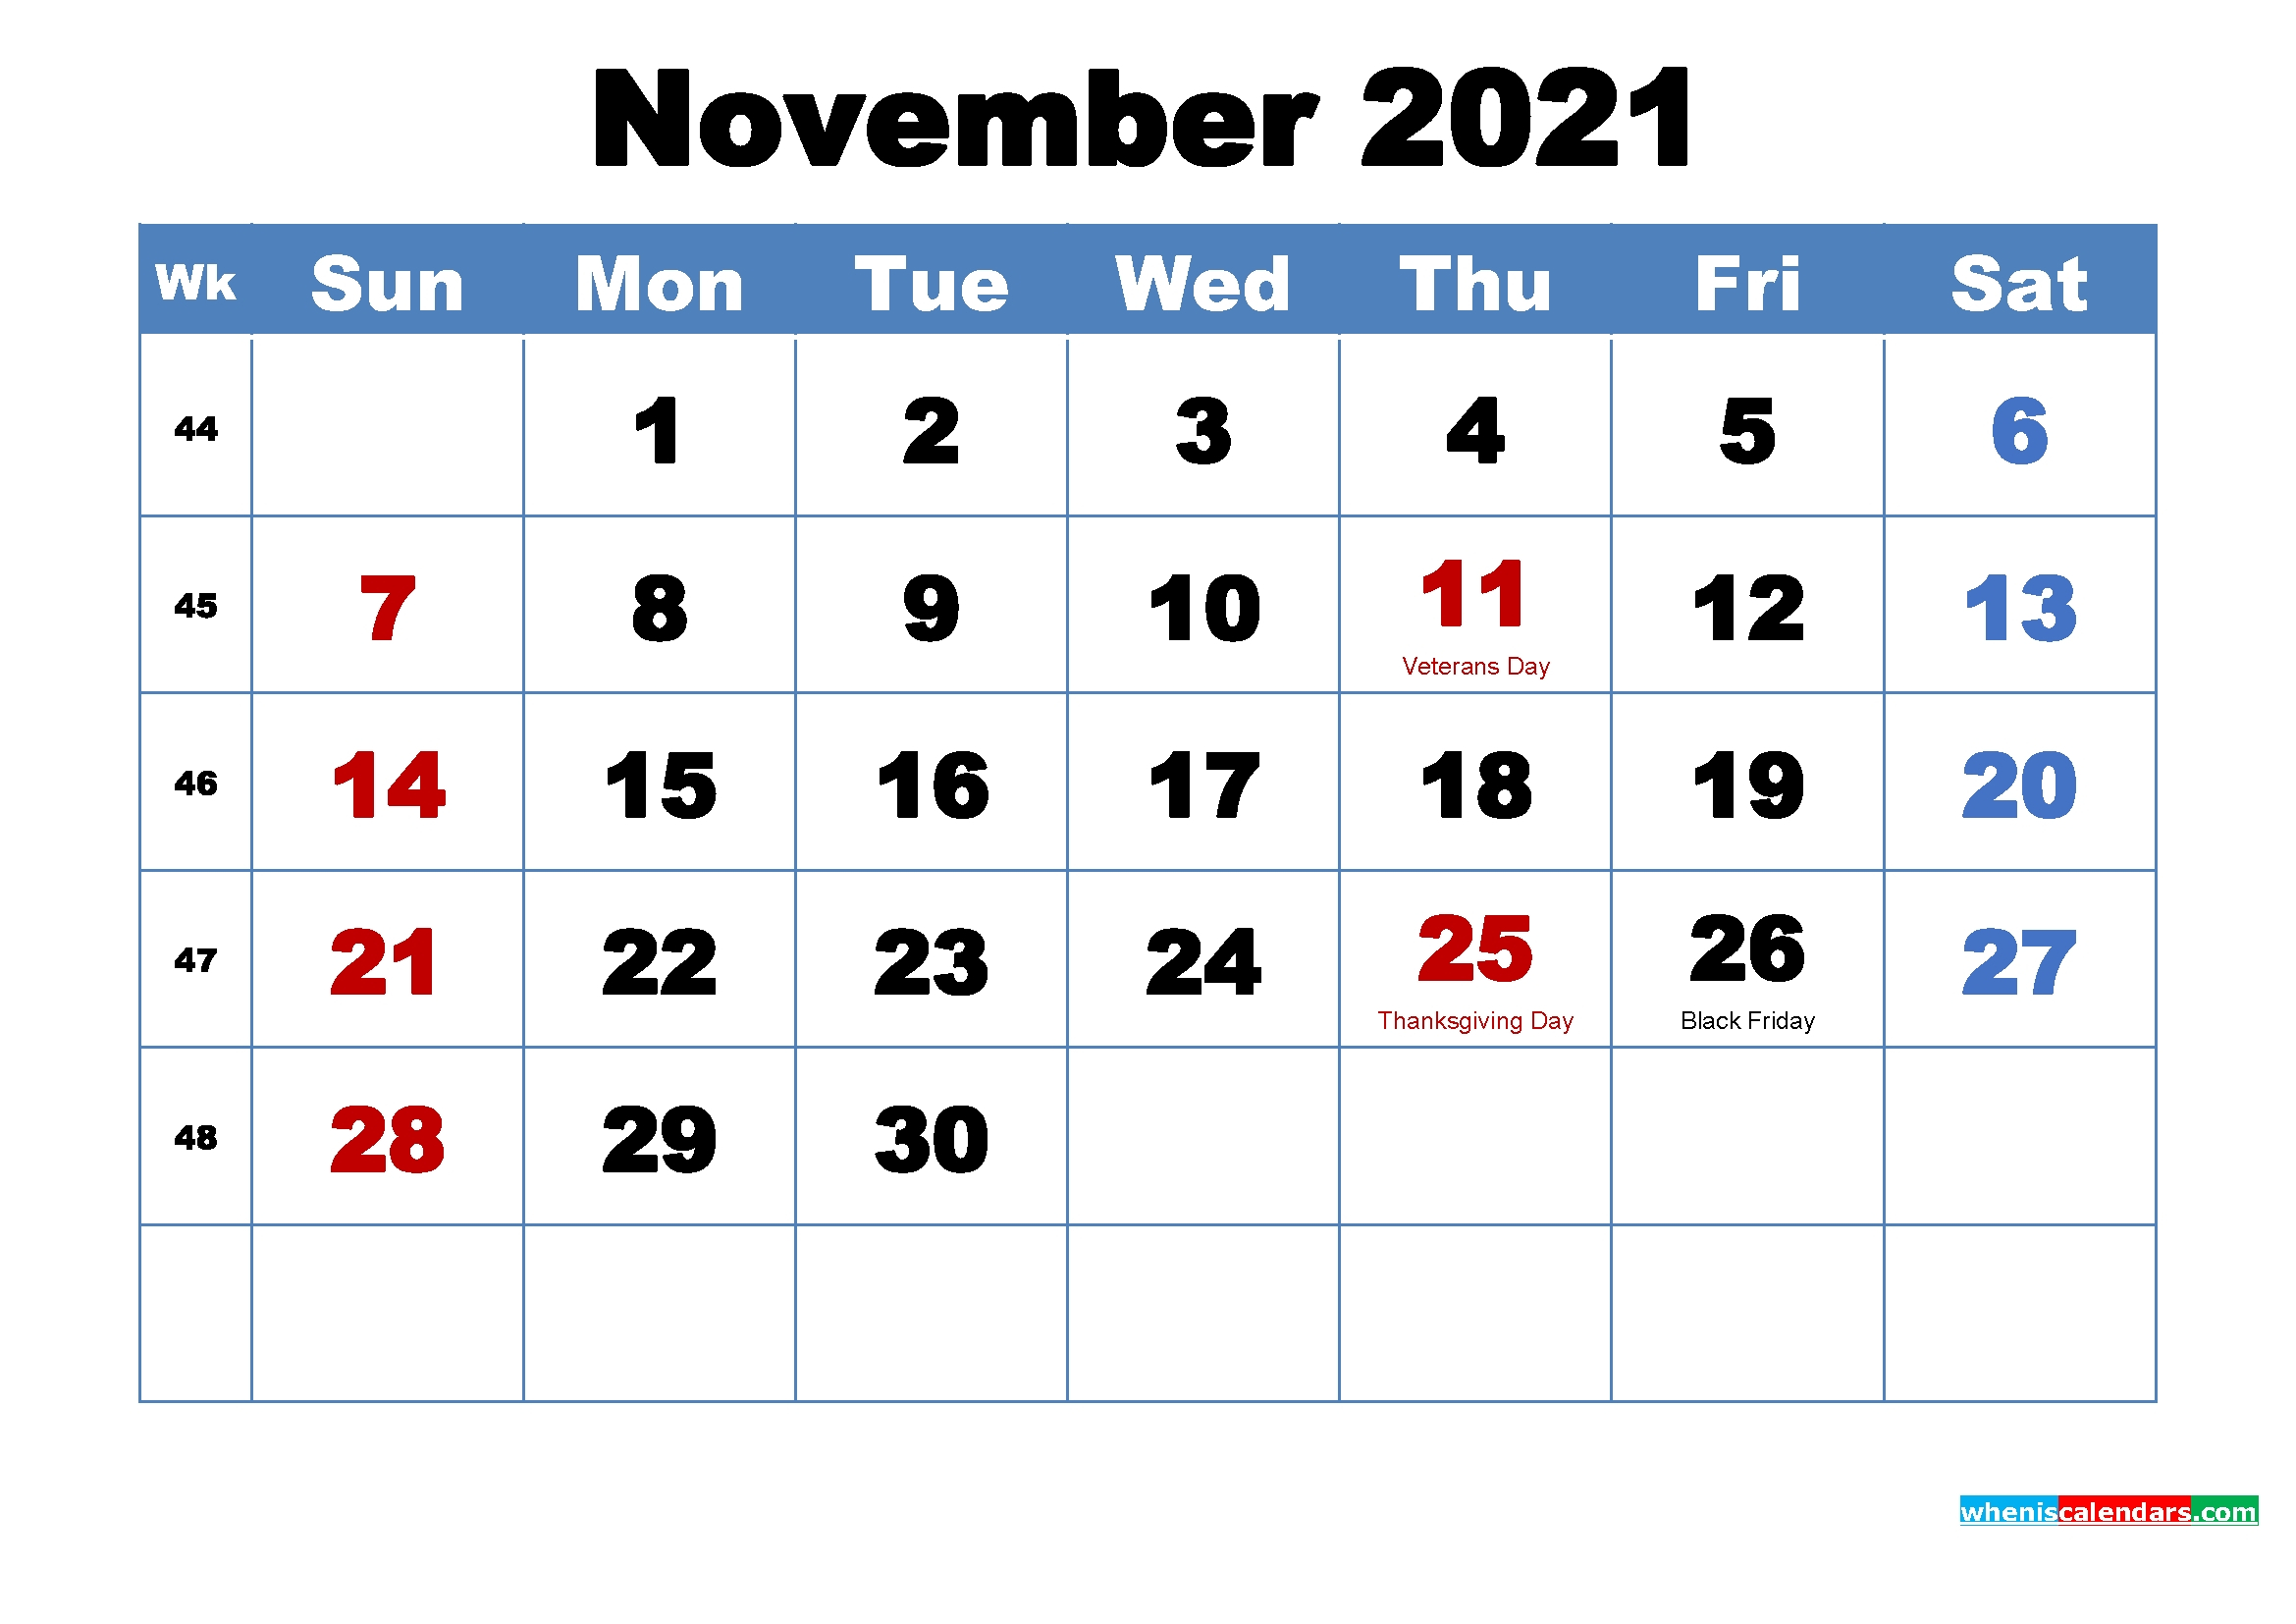 When Is Thanksgiving In 2021 2 | Avnitasoni for Malayalam Calendar 2021 November